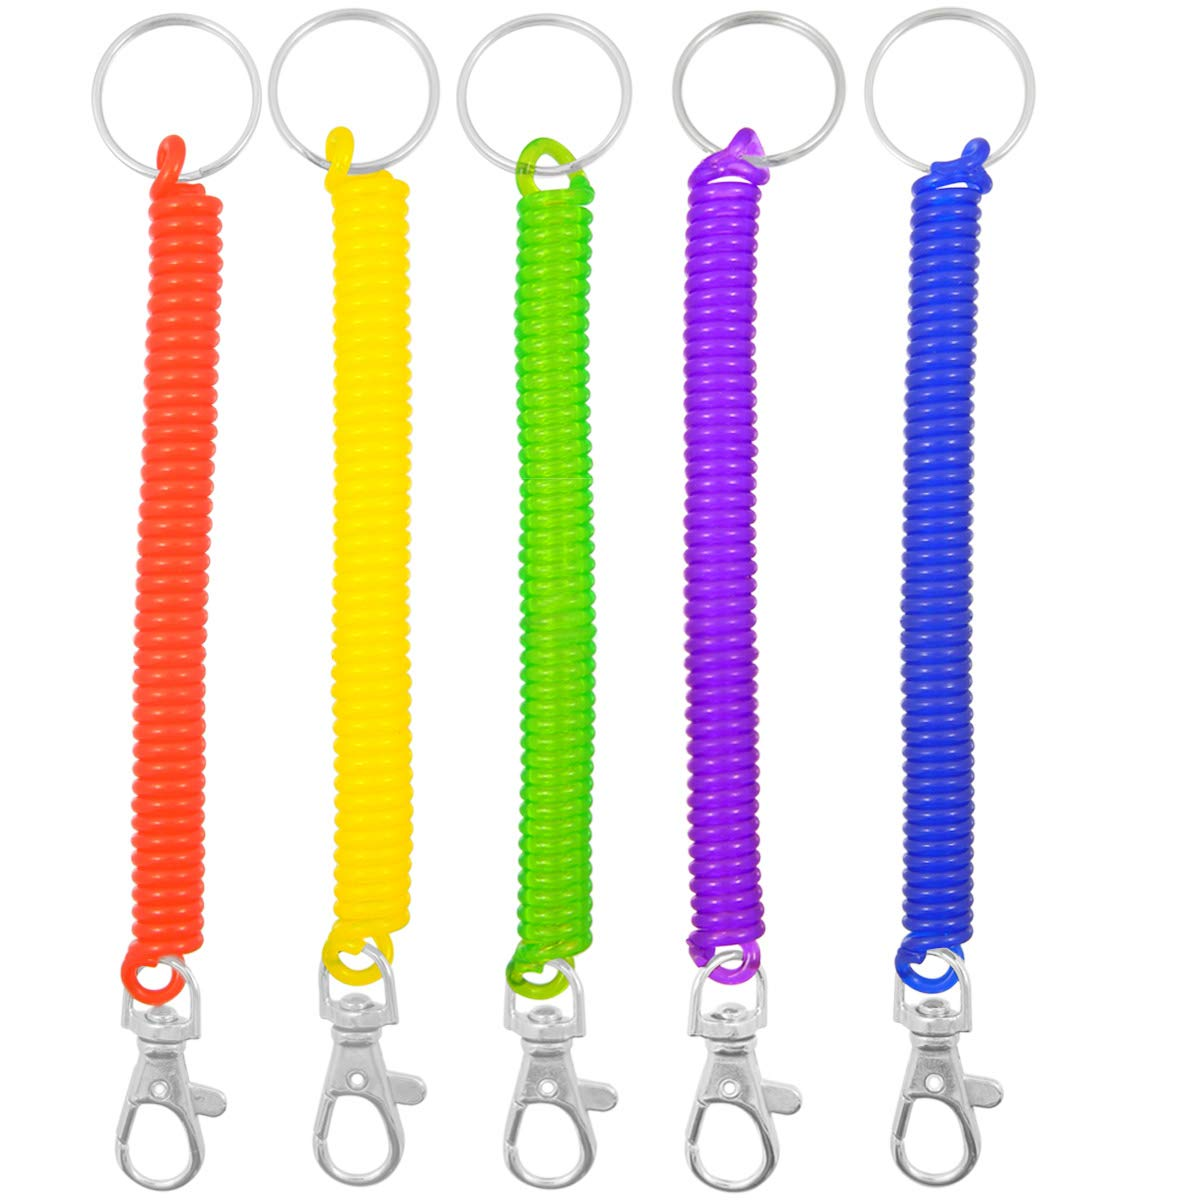 Shells 5PCS Blue Color Flexible Theftproof Spring Coil Safety Keychain with Clip Shells group